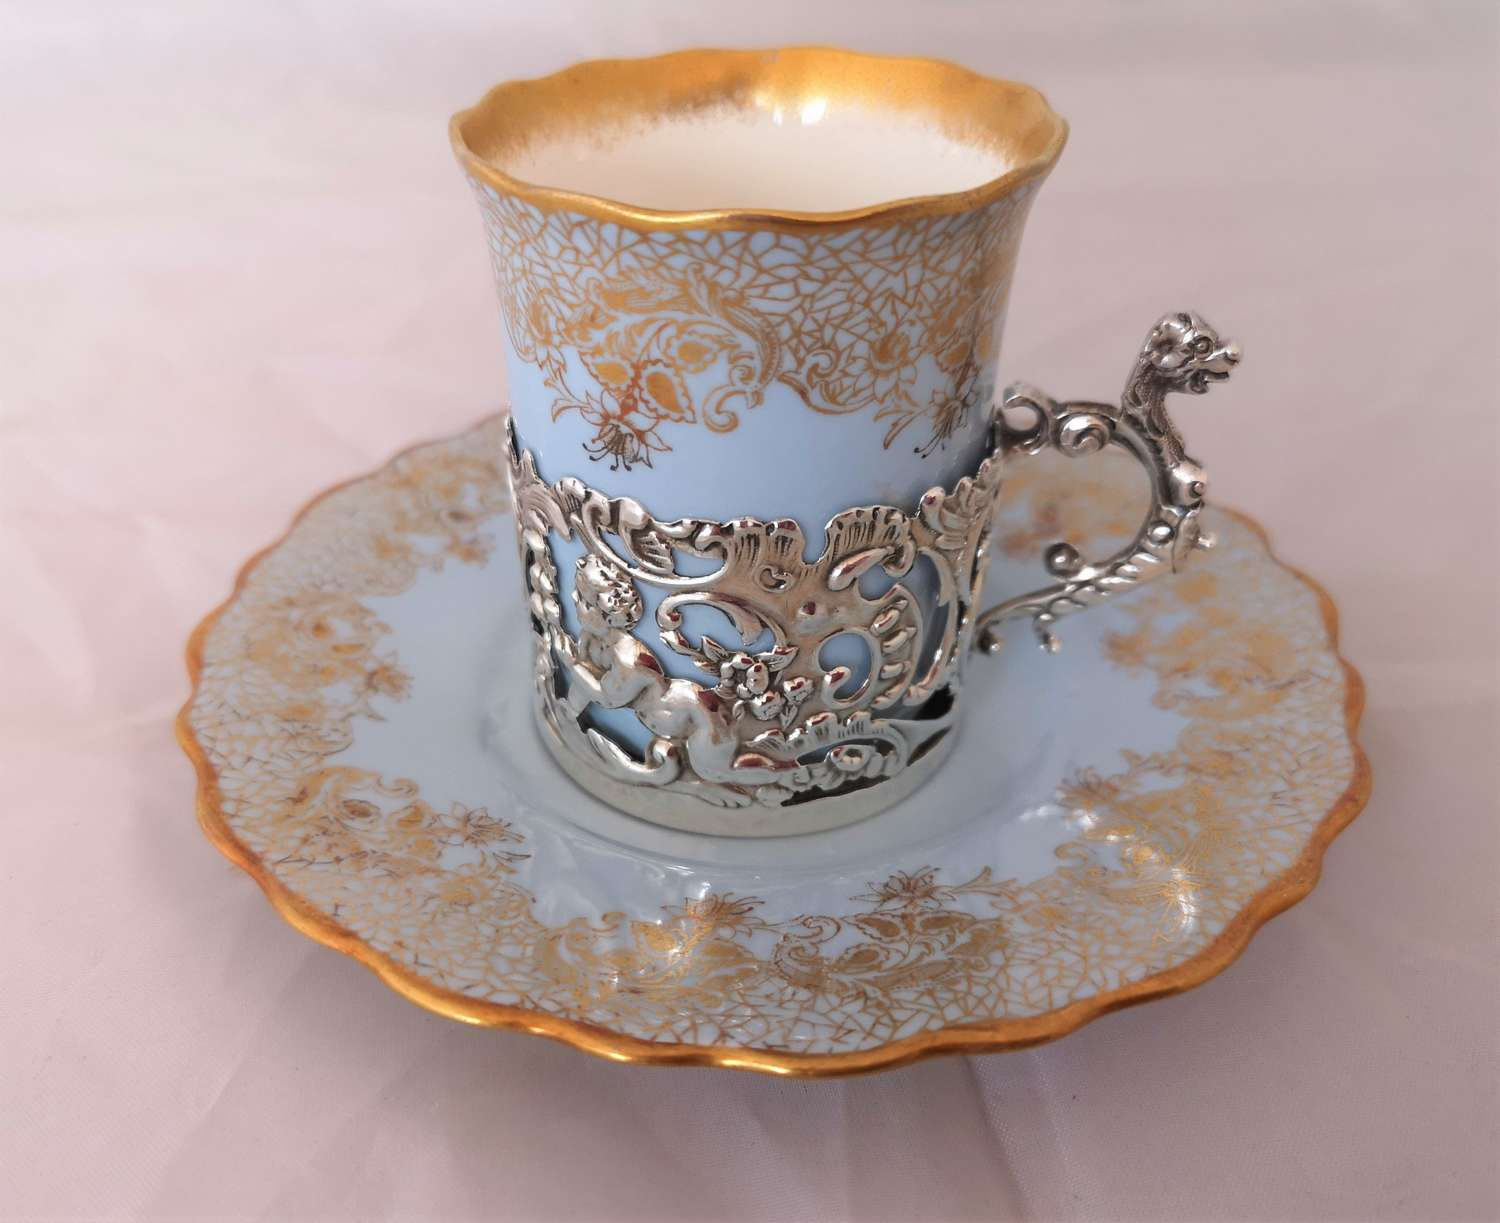 Antique Wedgwood cup and saucer